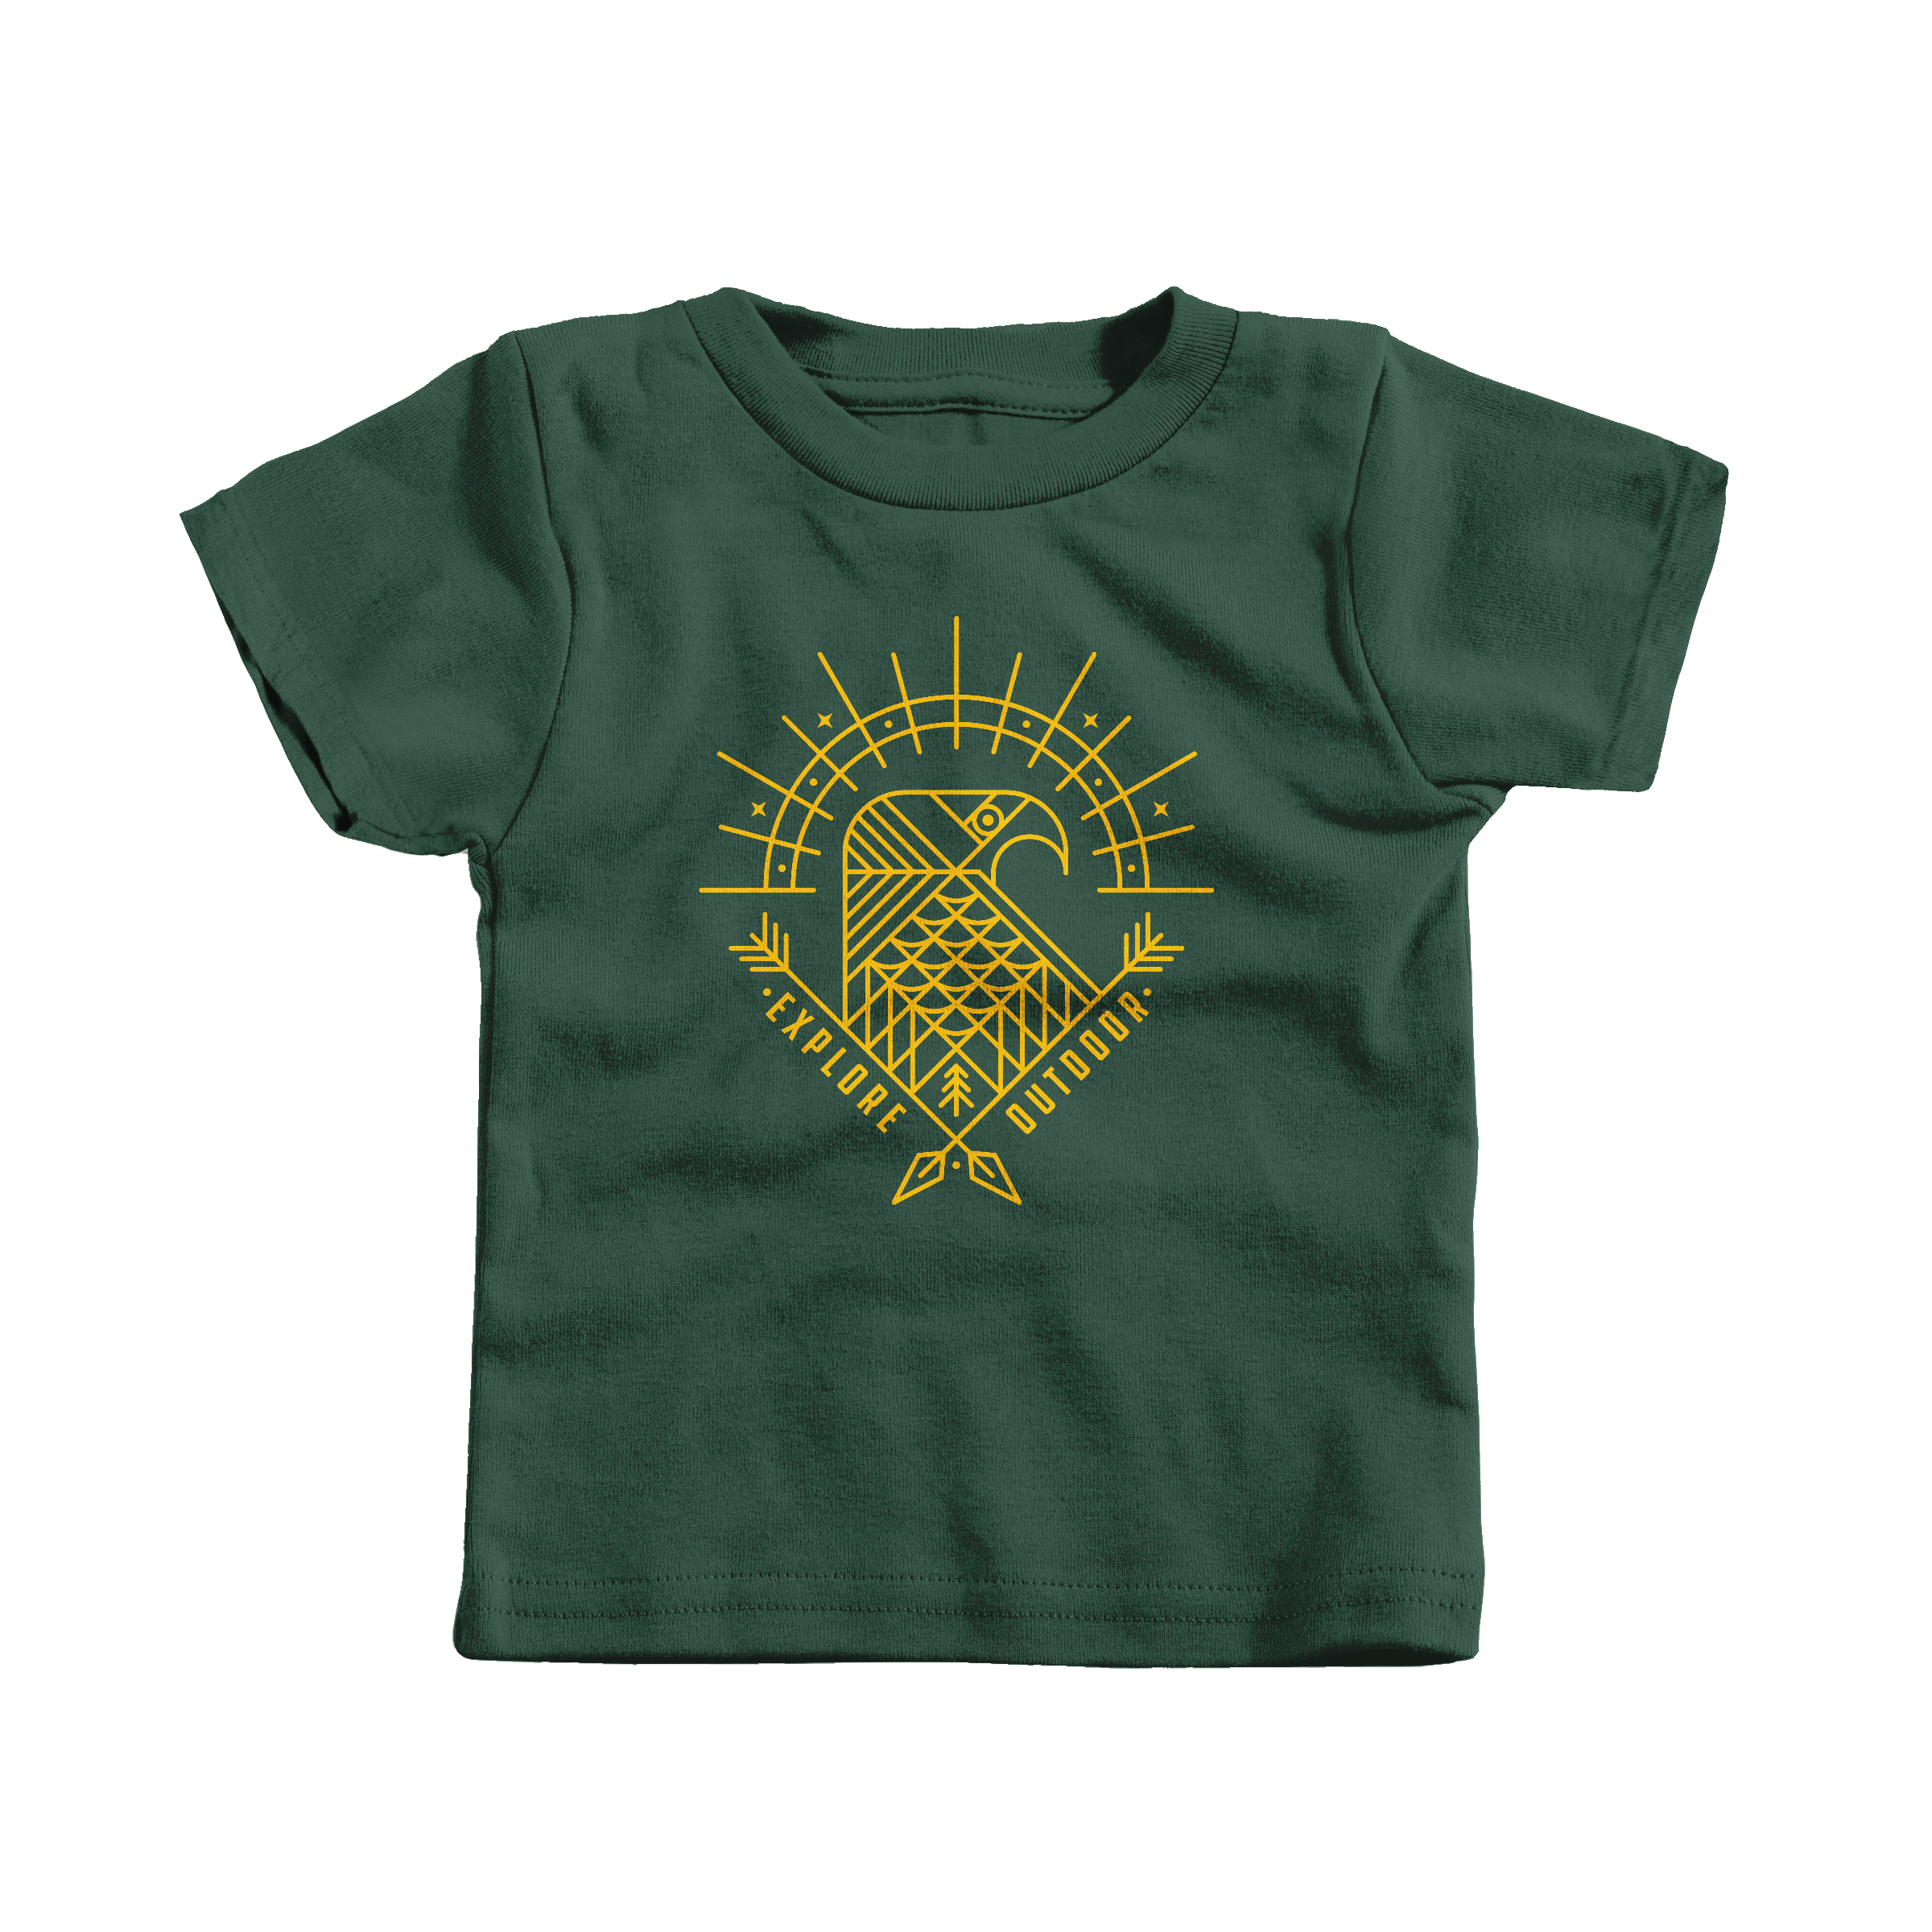 Explore Outdoor Forest (T-Shirt)